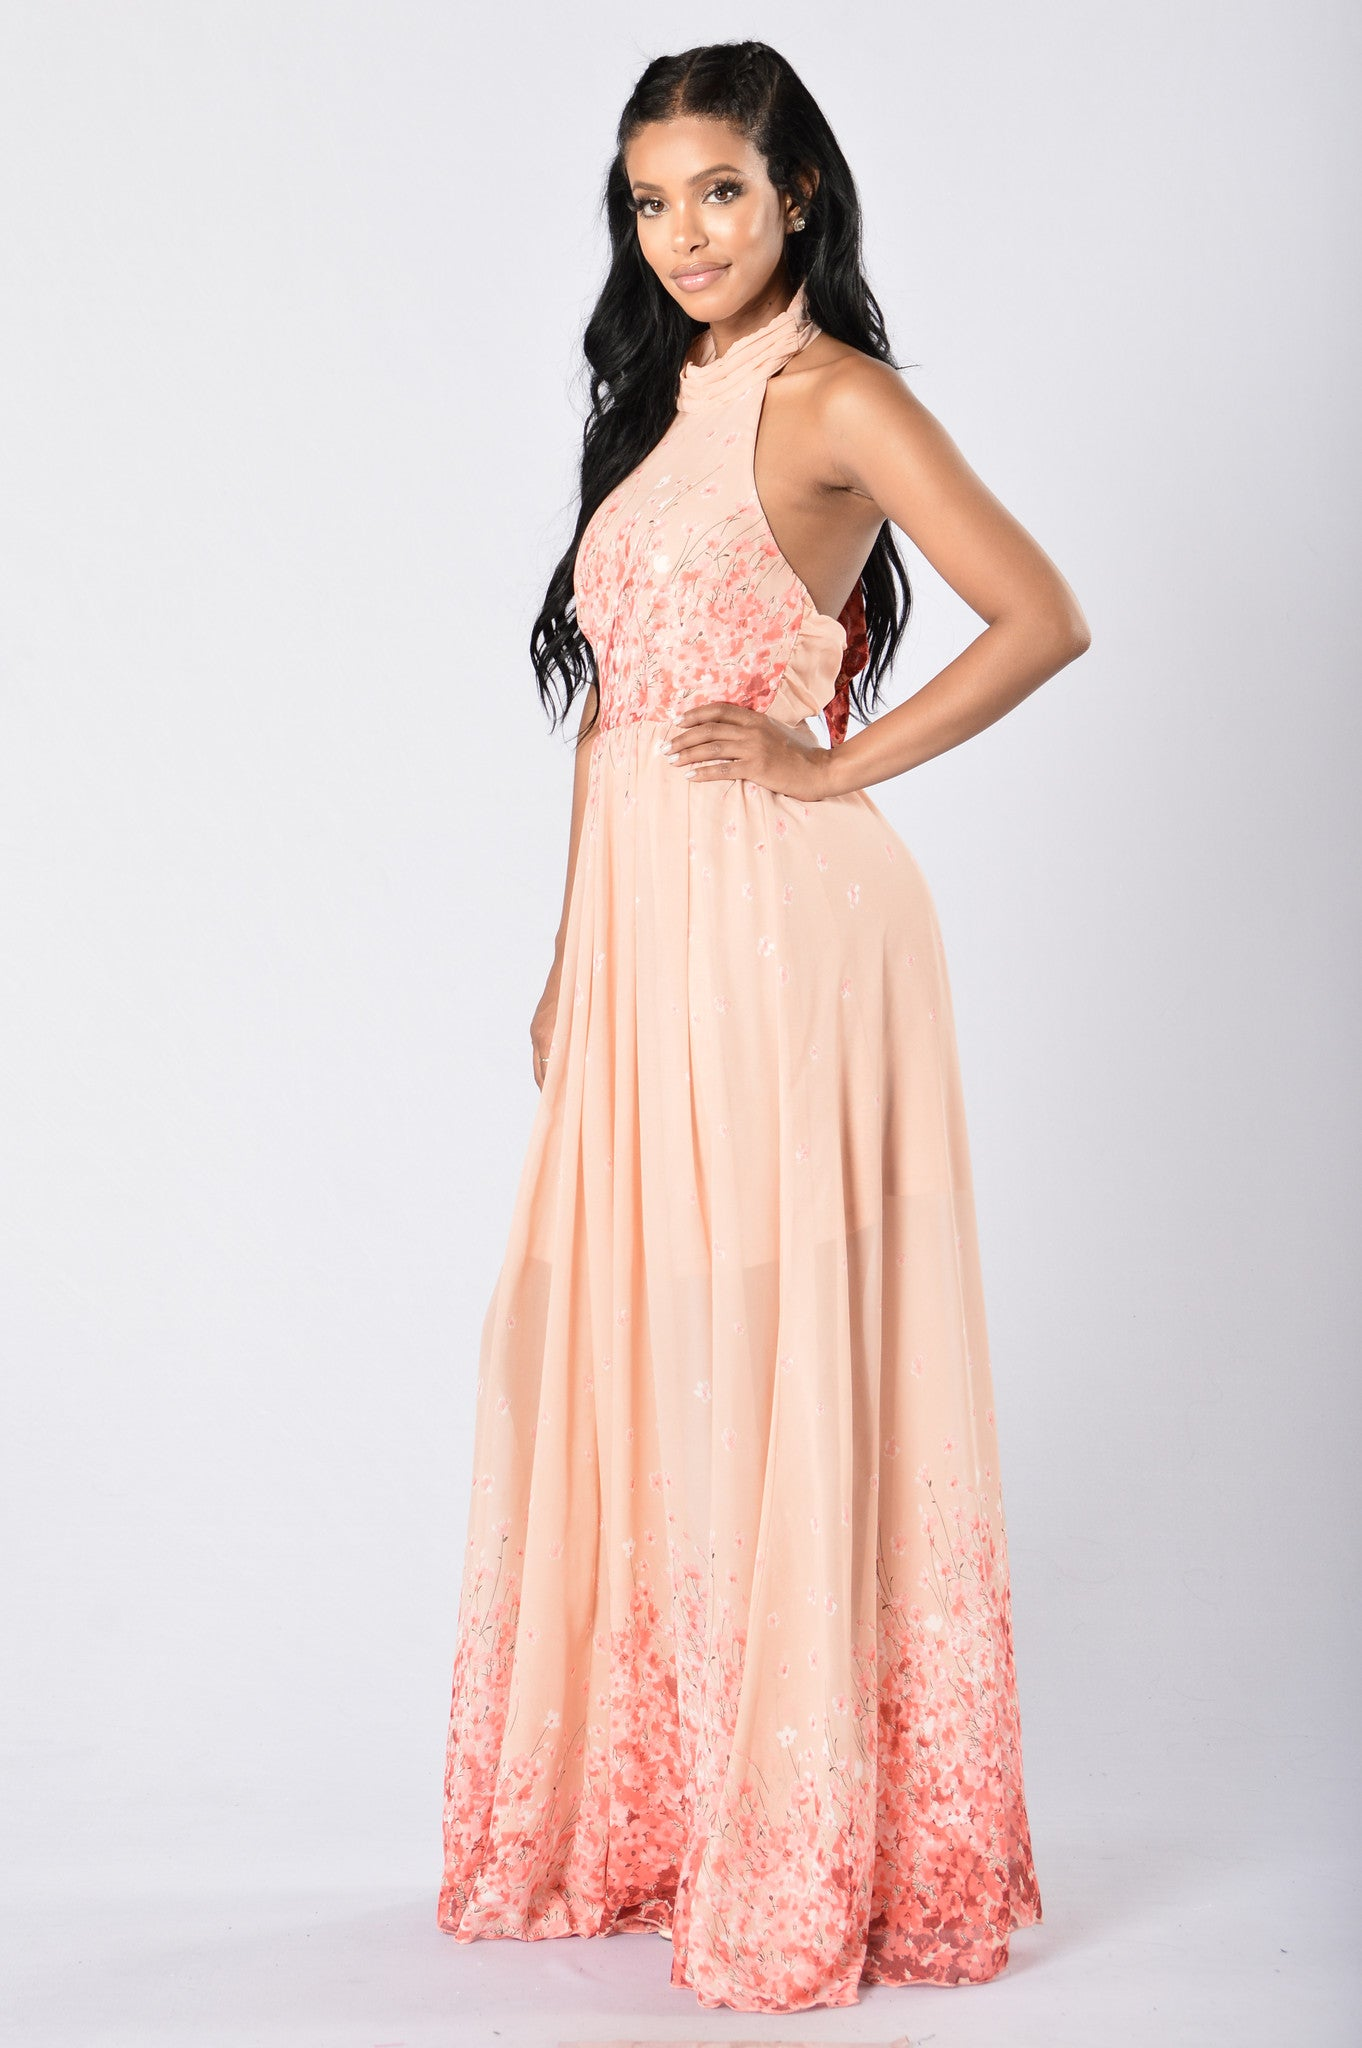 Cherry Blossoms Maxi Dress - Coral/Nude